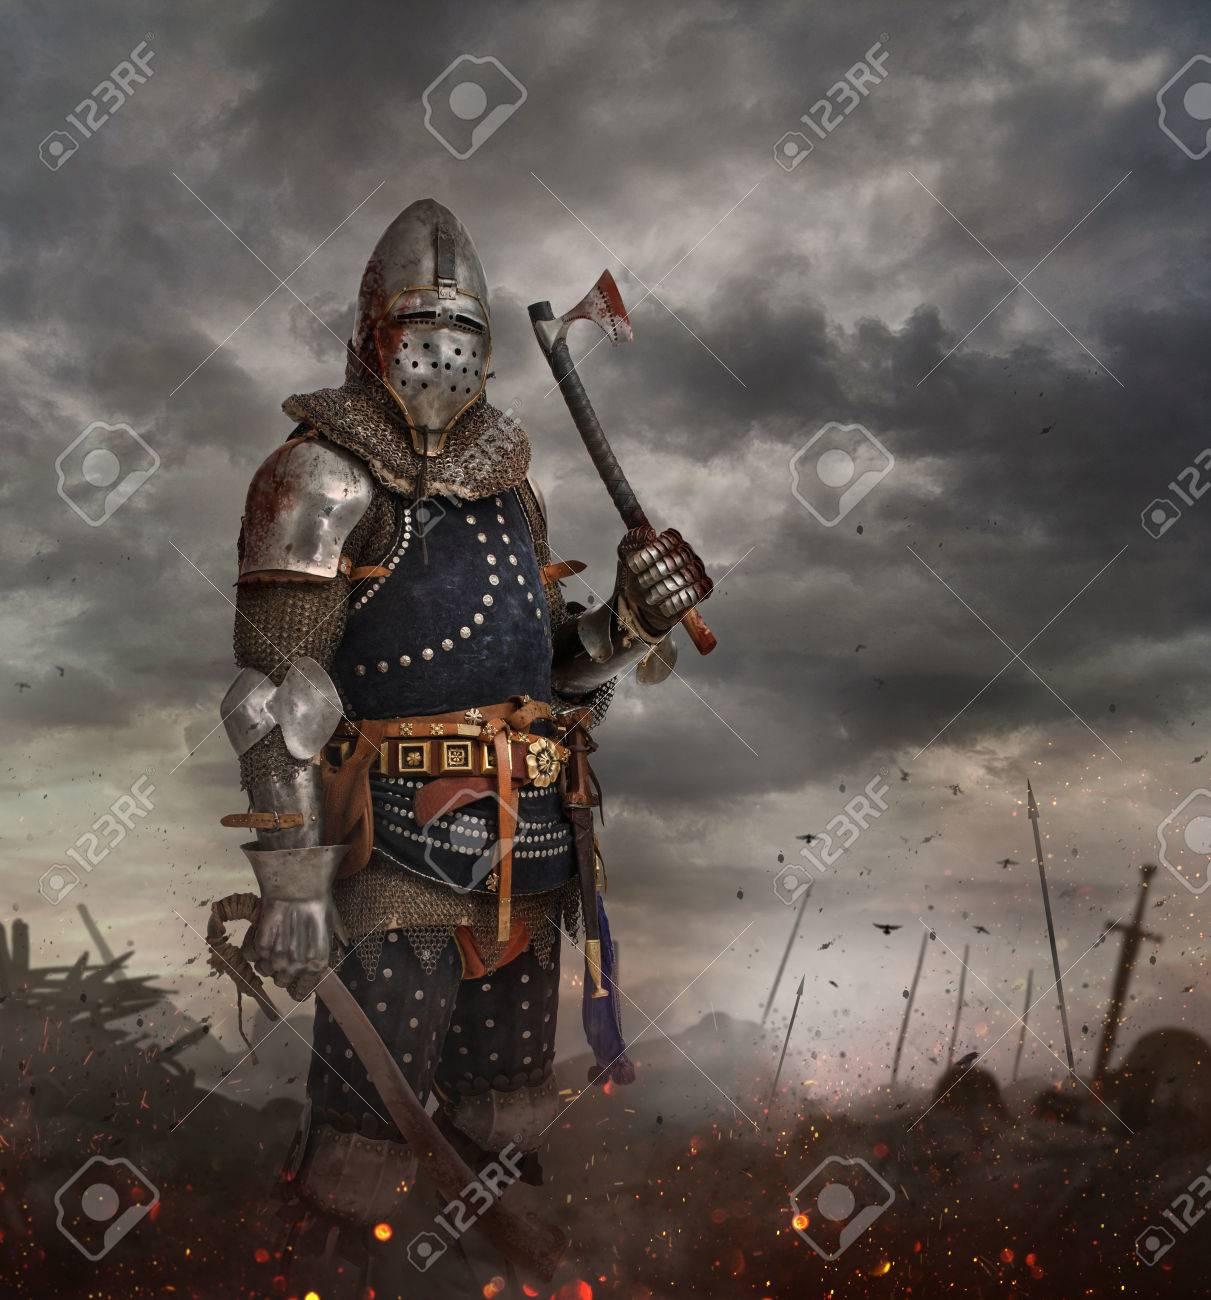 Knight with sword in battlefield with dark clouds on background. - 62379359